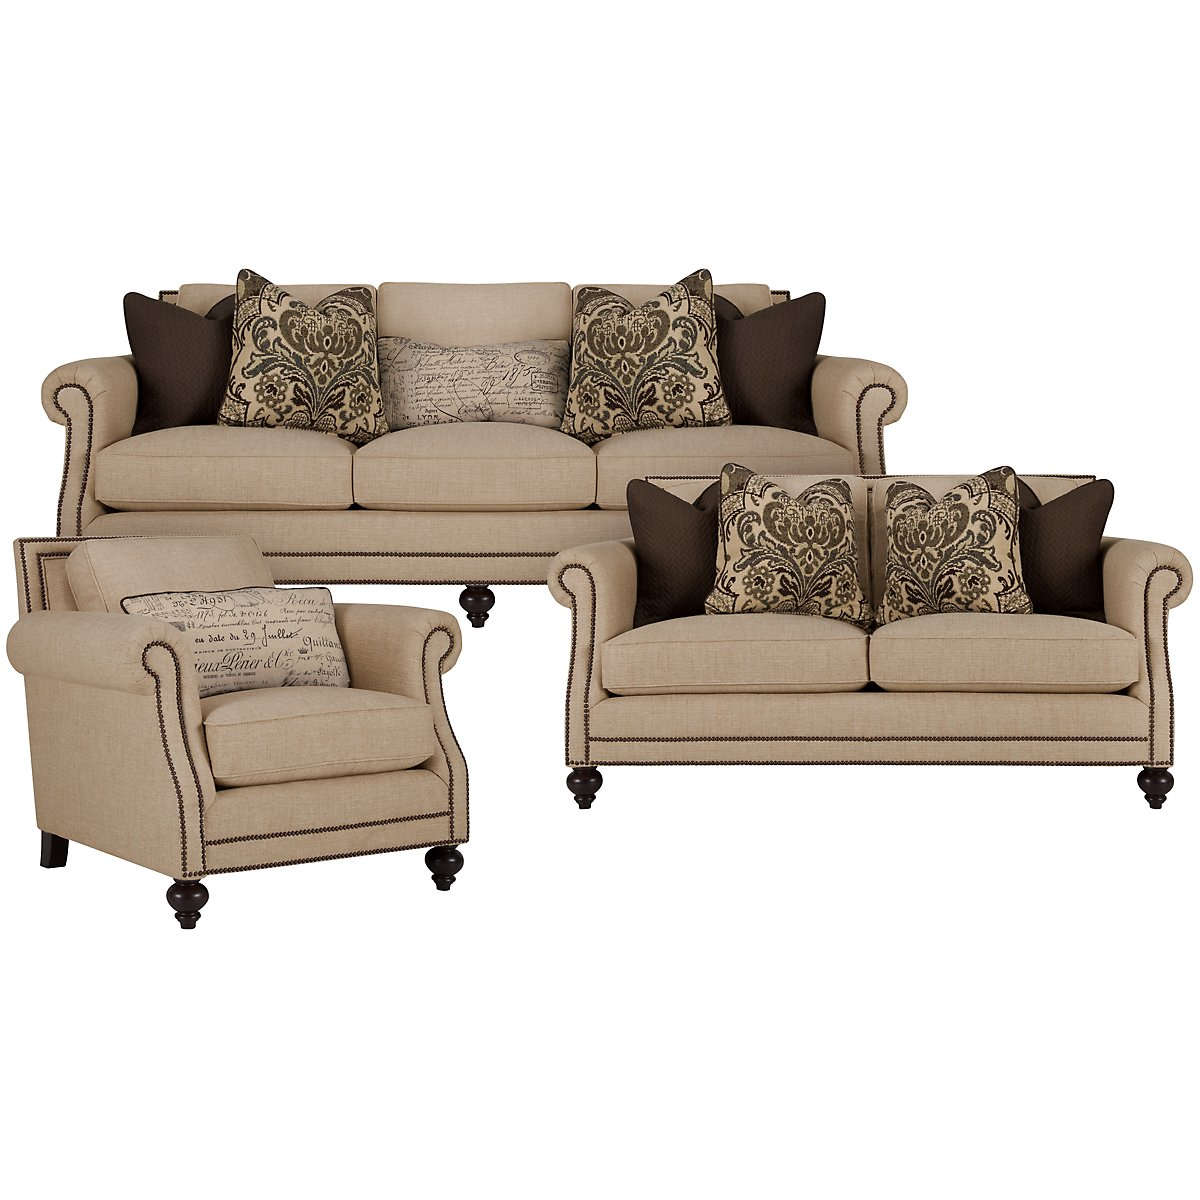 Bernhardt brae sofa bernhardt living room brae sectional for Bernhardt furniture